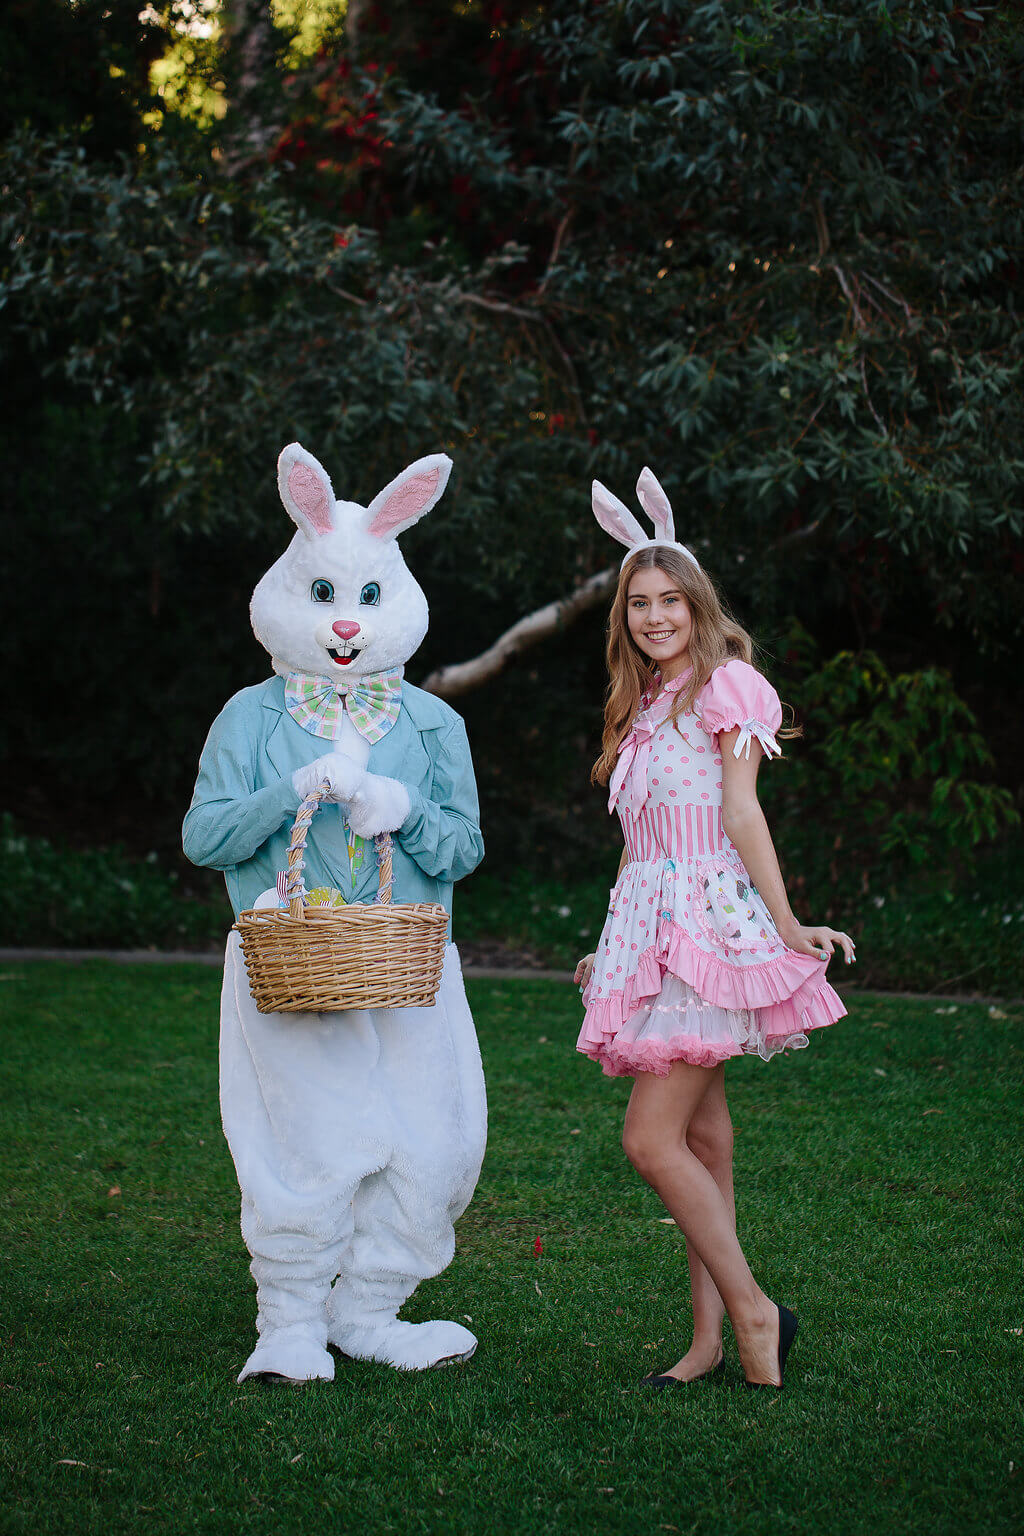 Easter Bunny sightings in Perth!